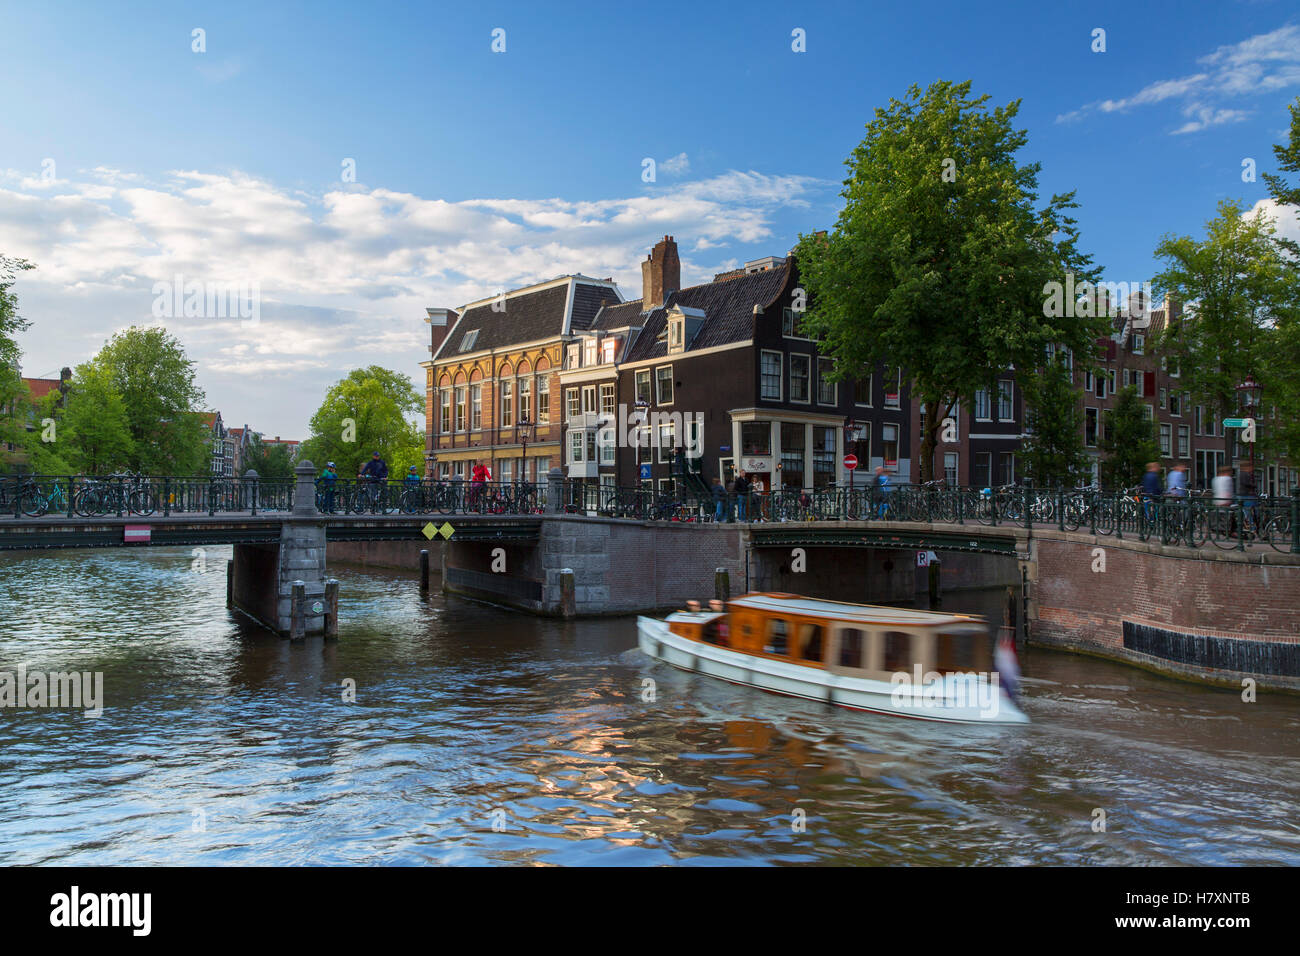 Boat on Prinsengracht canal, Amsterdam, Netherlands - Stock Image